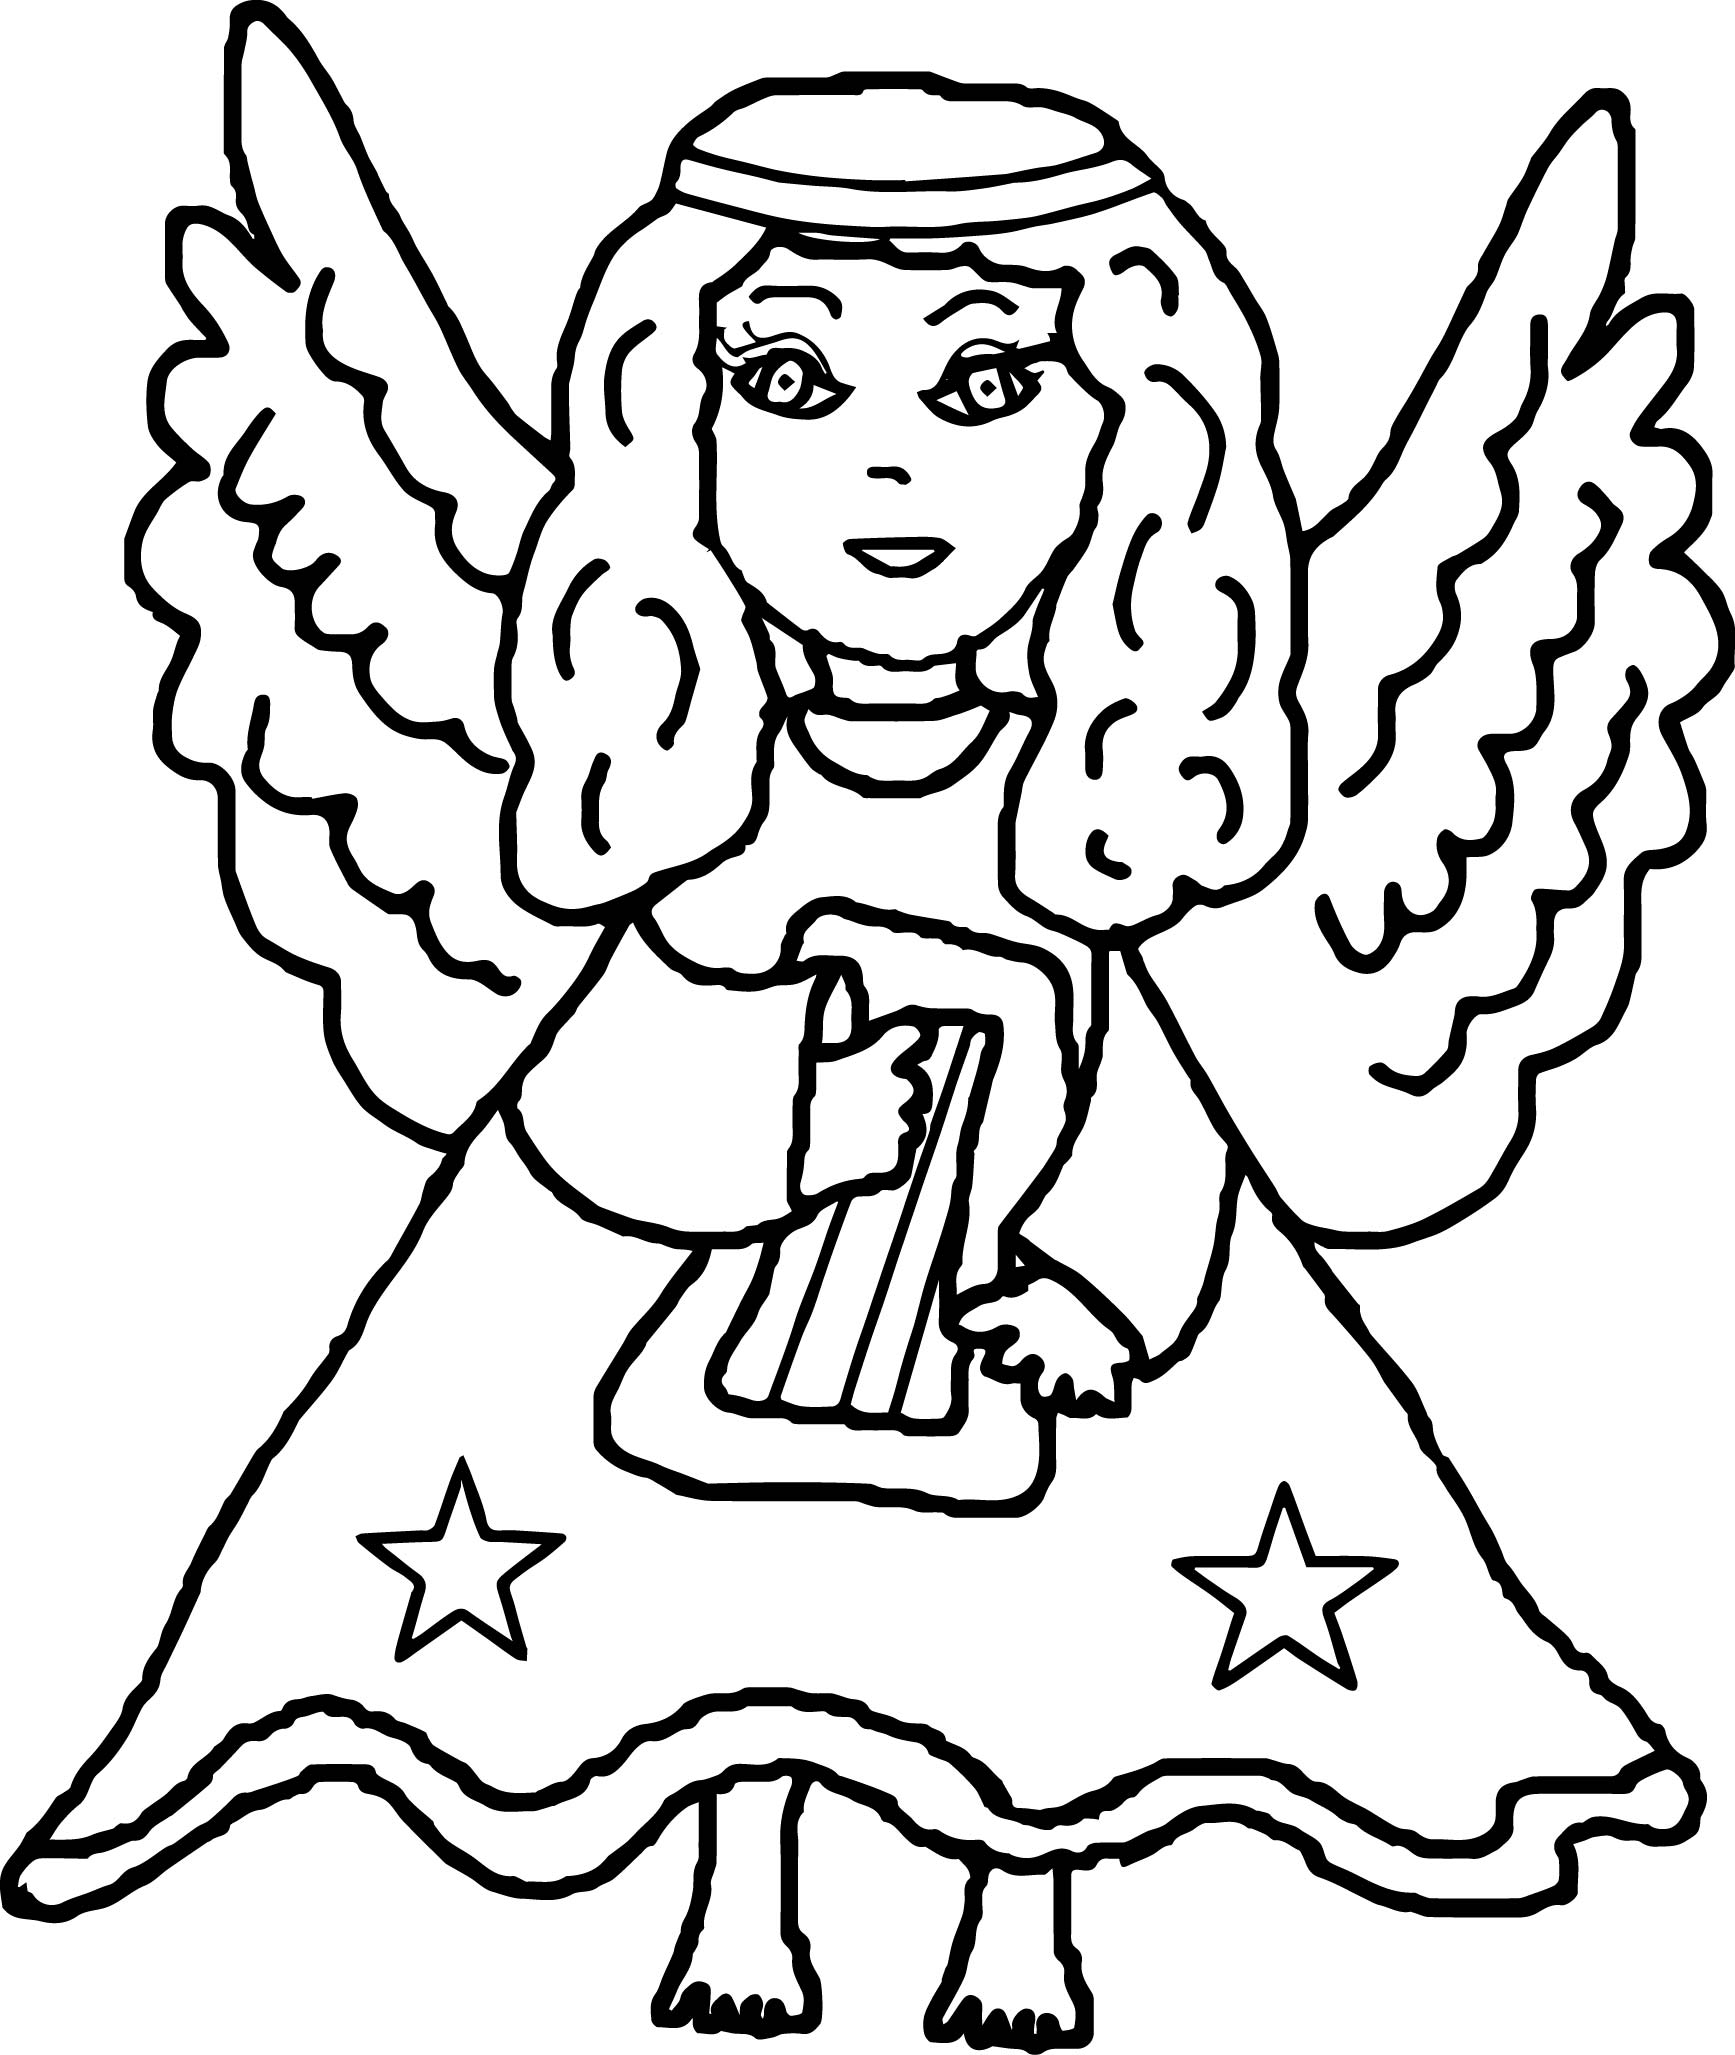 Angel Holding Harp Coloring Page